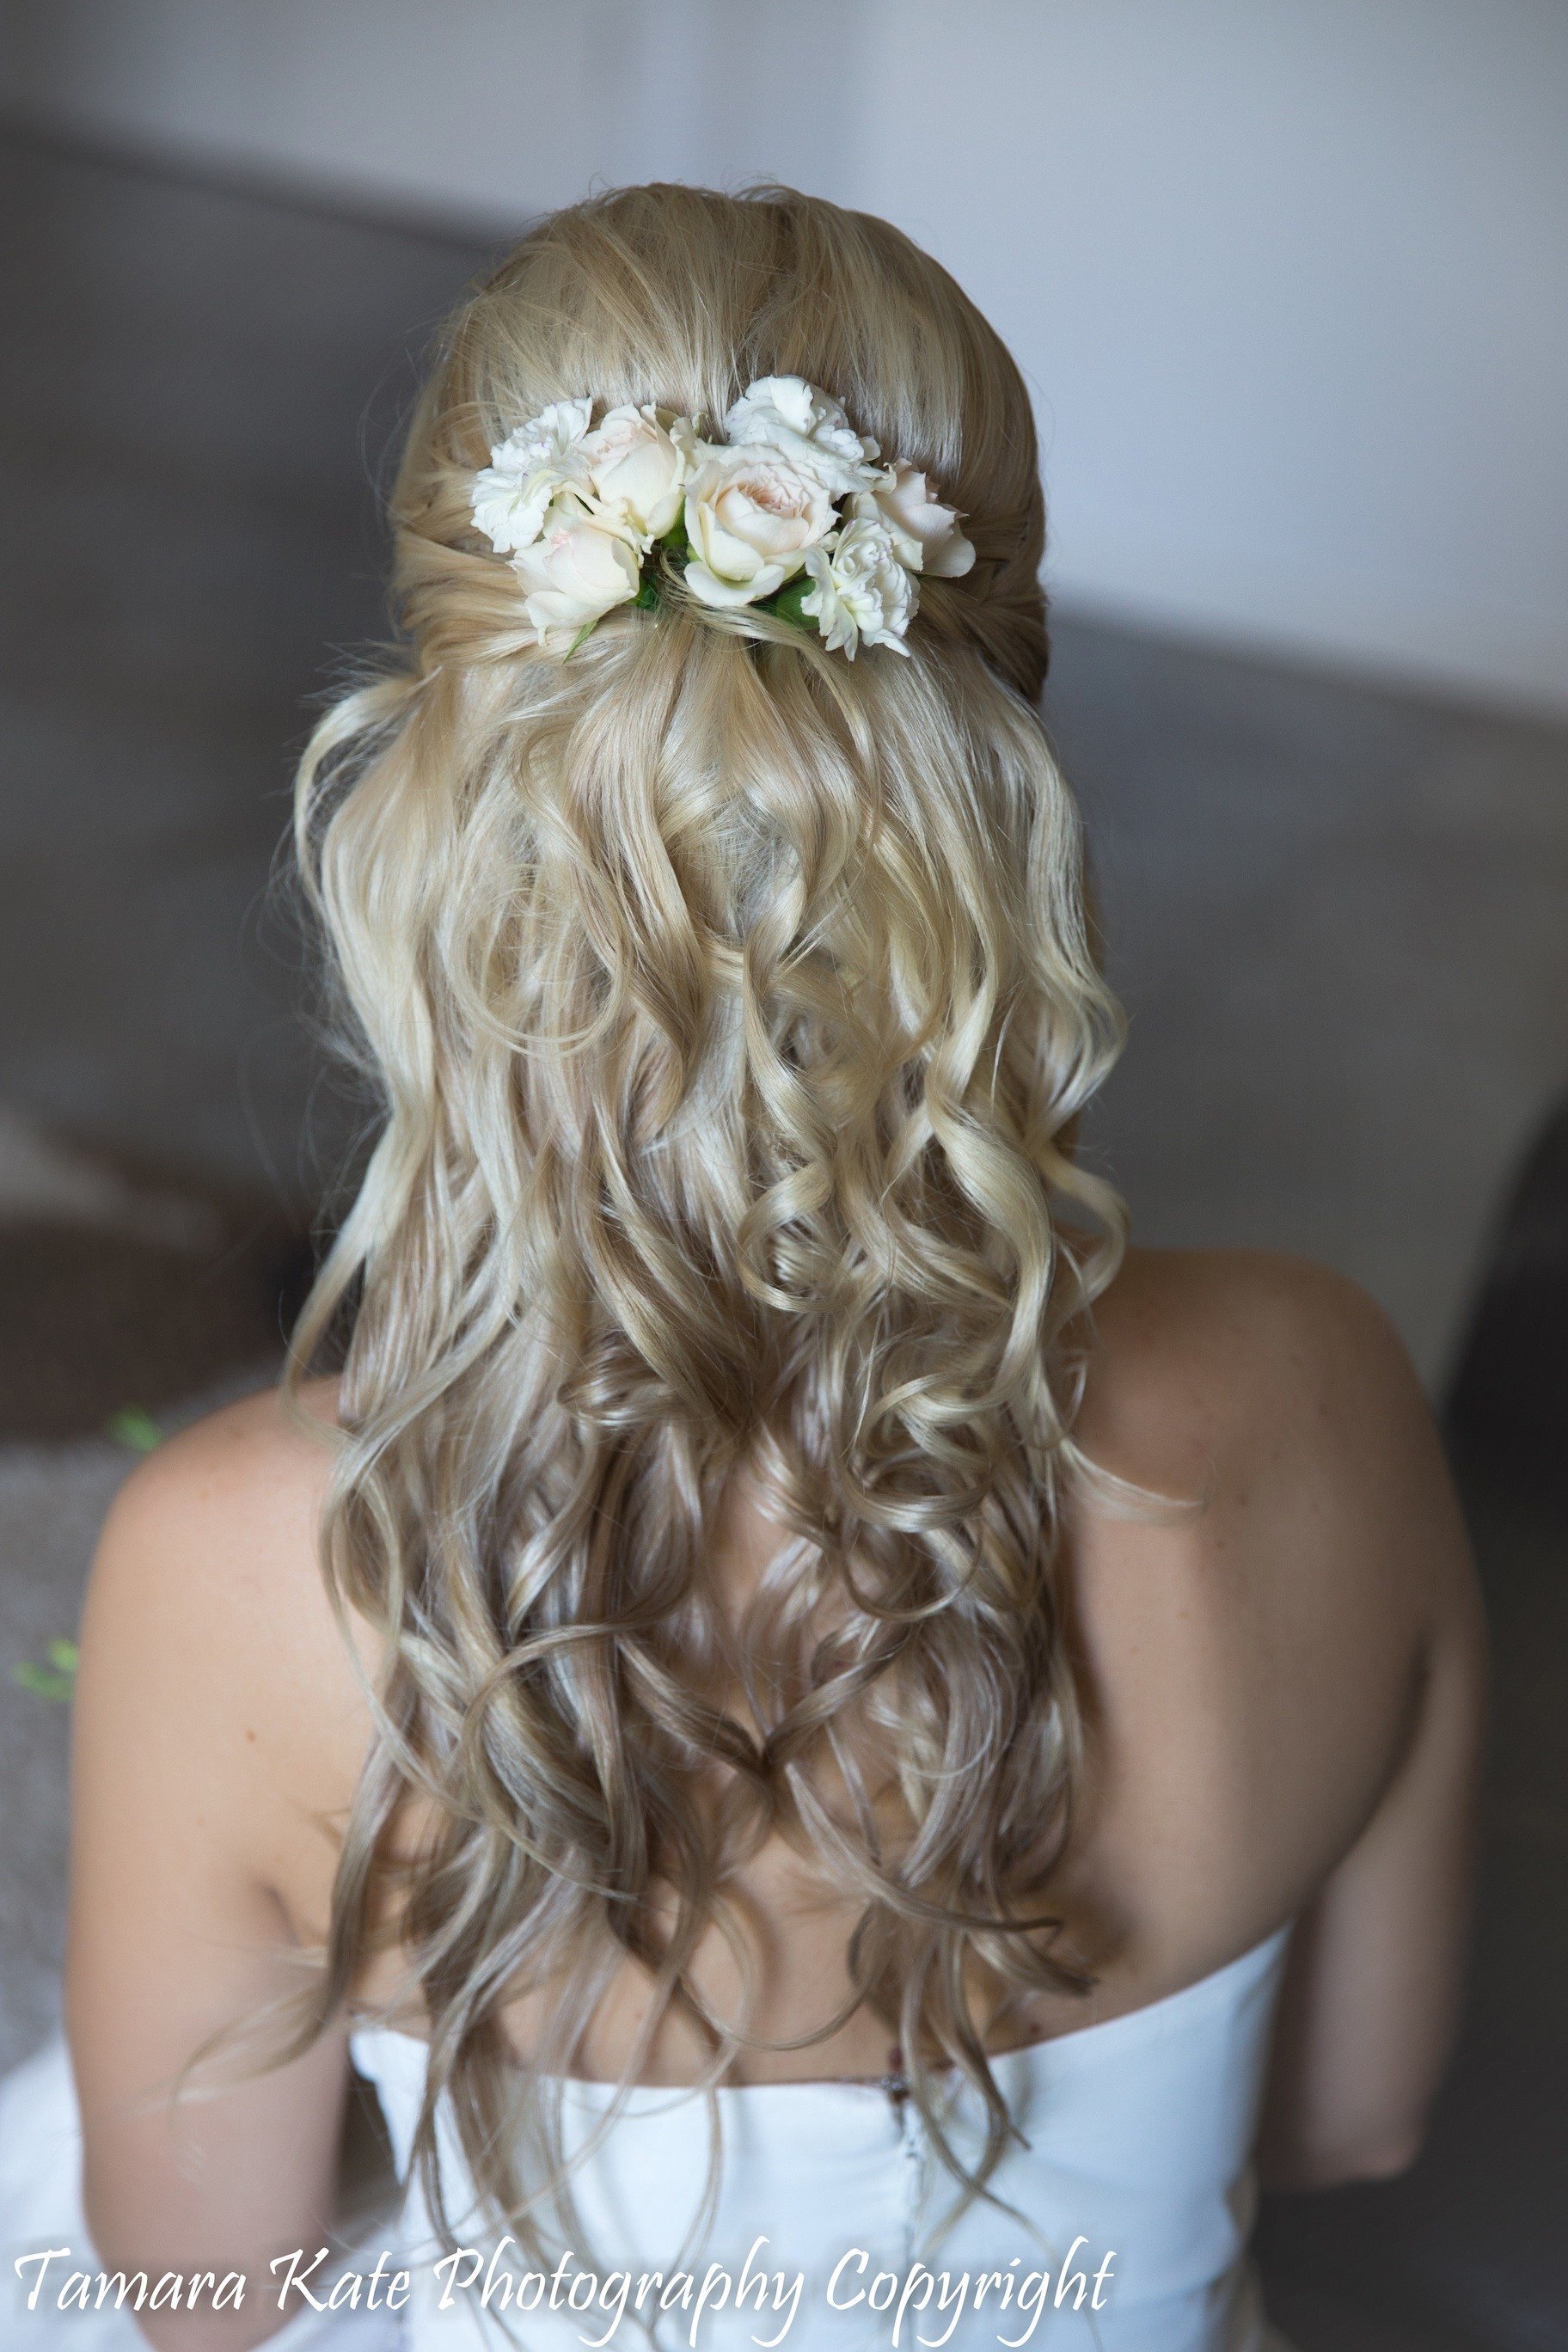 The Best Palm Cove Wedding Makeup Hair 0408 587 025 Pictures